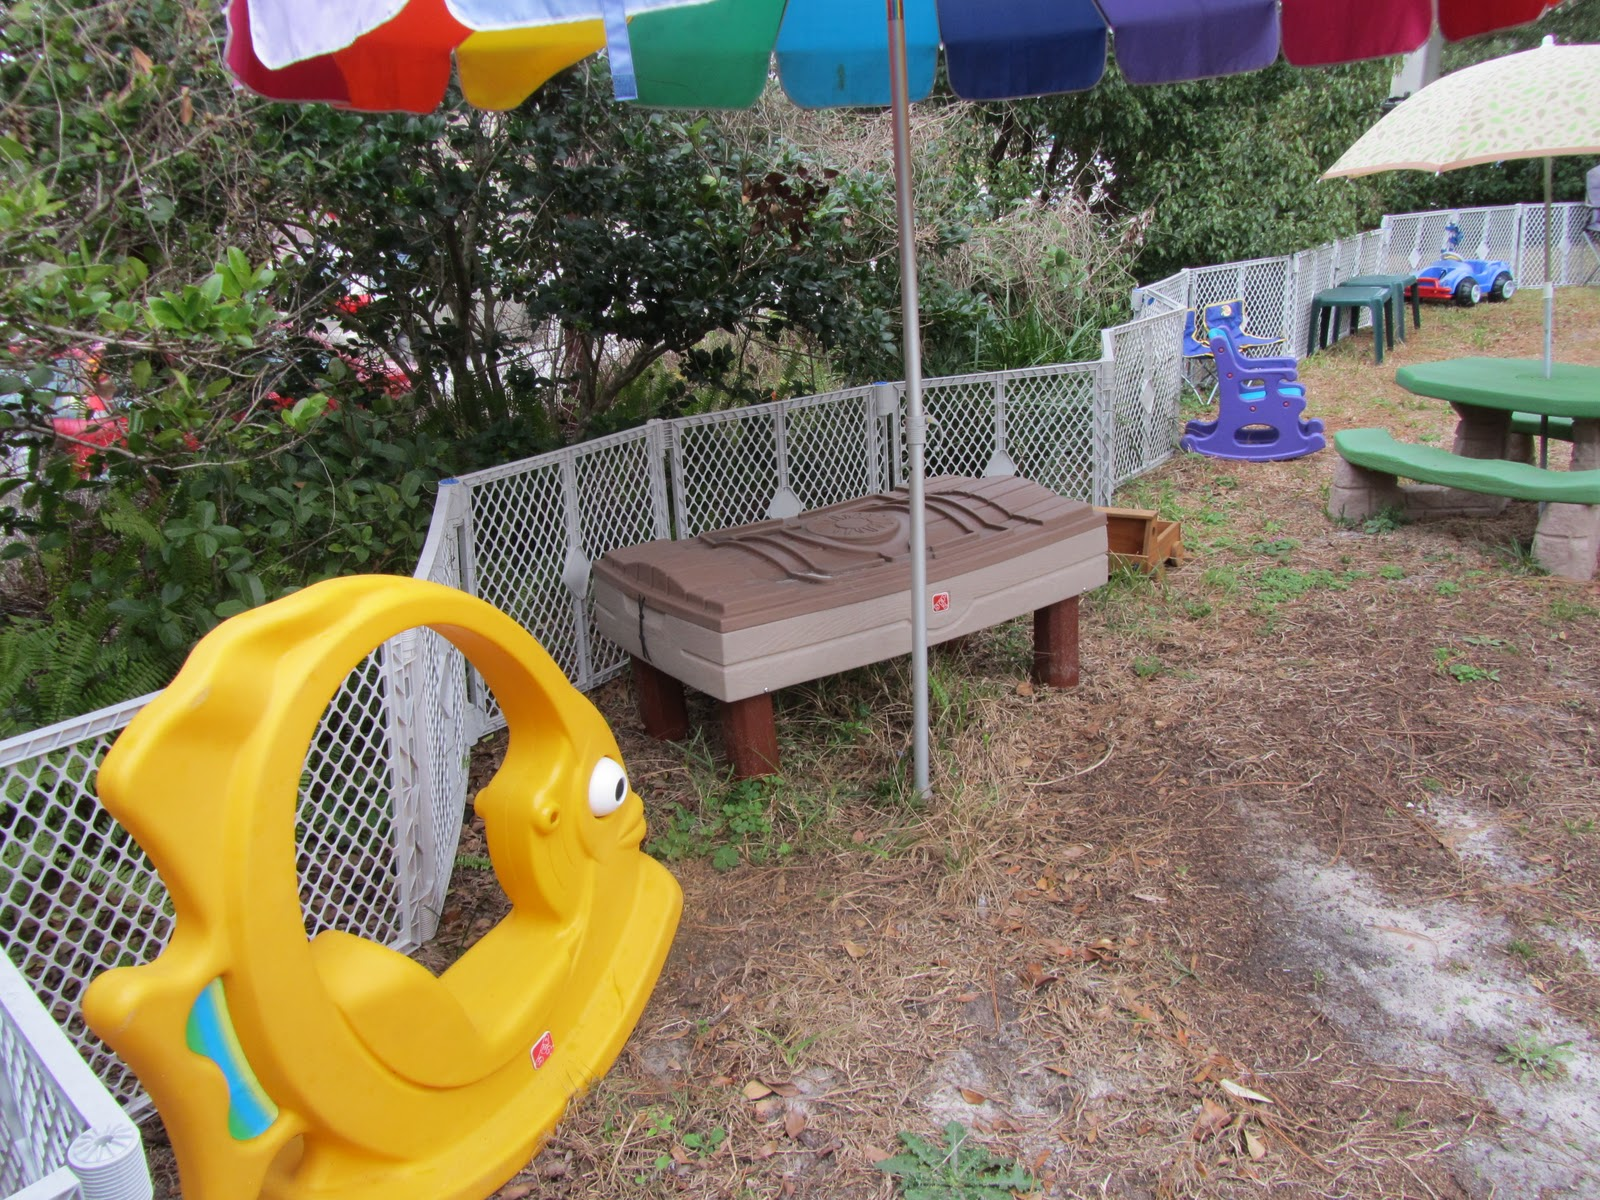 backyard play area life with twins and multiples has moved